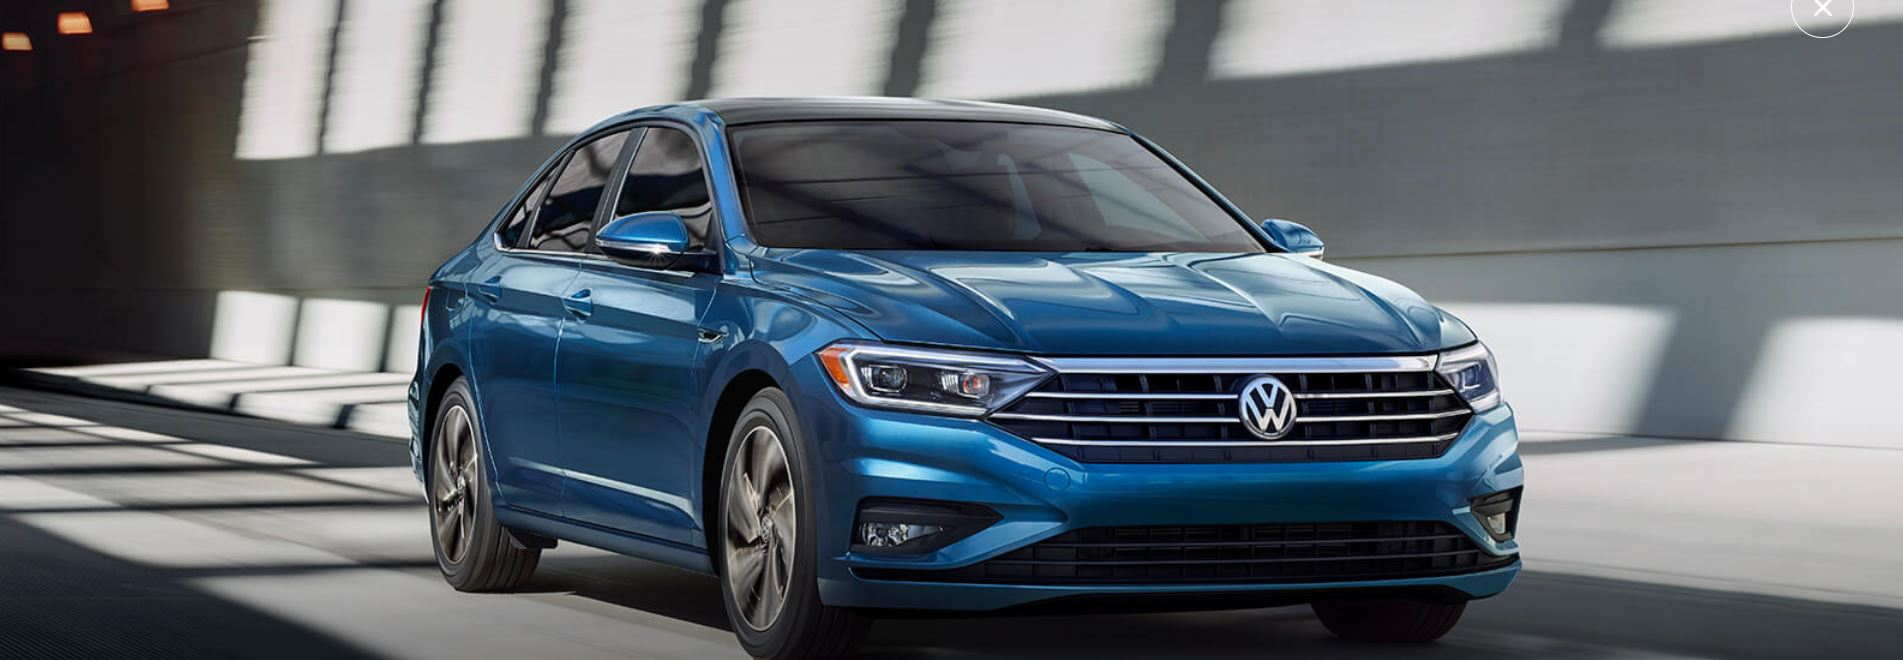 Jetta Lease Deals South Jordan UT | Volkswagen SouthTowne